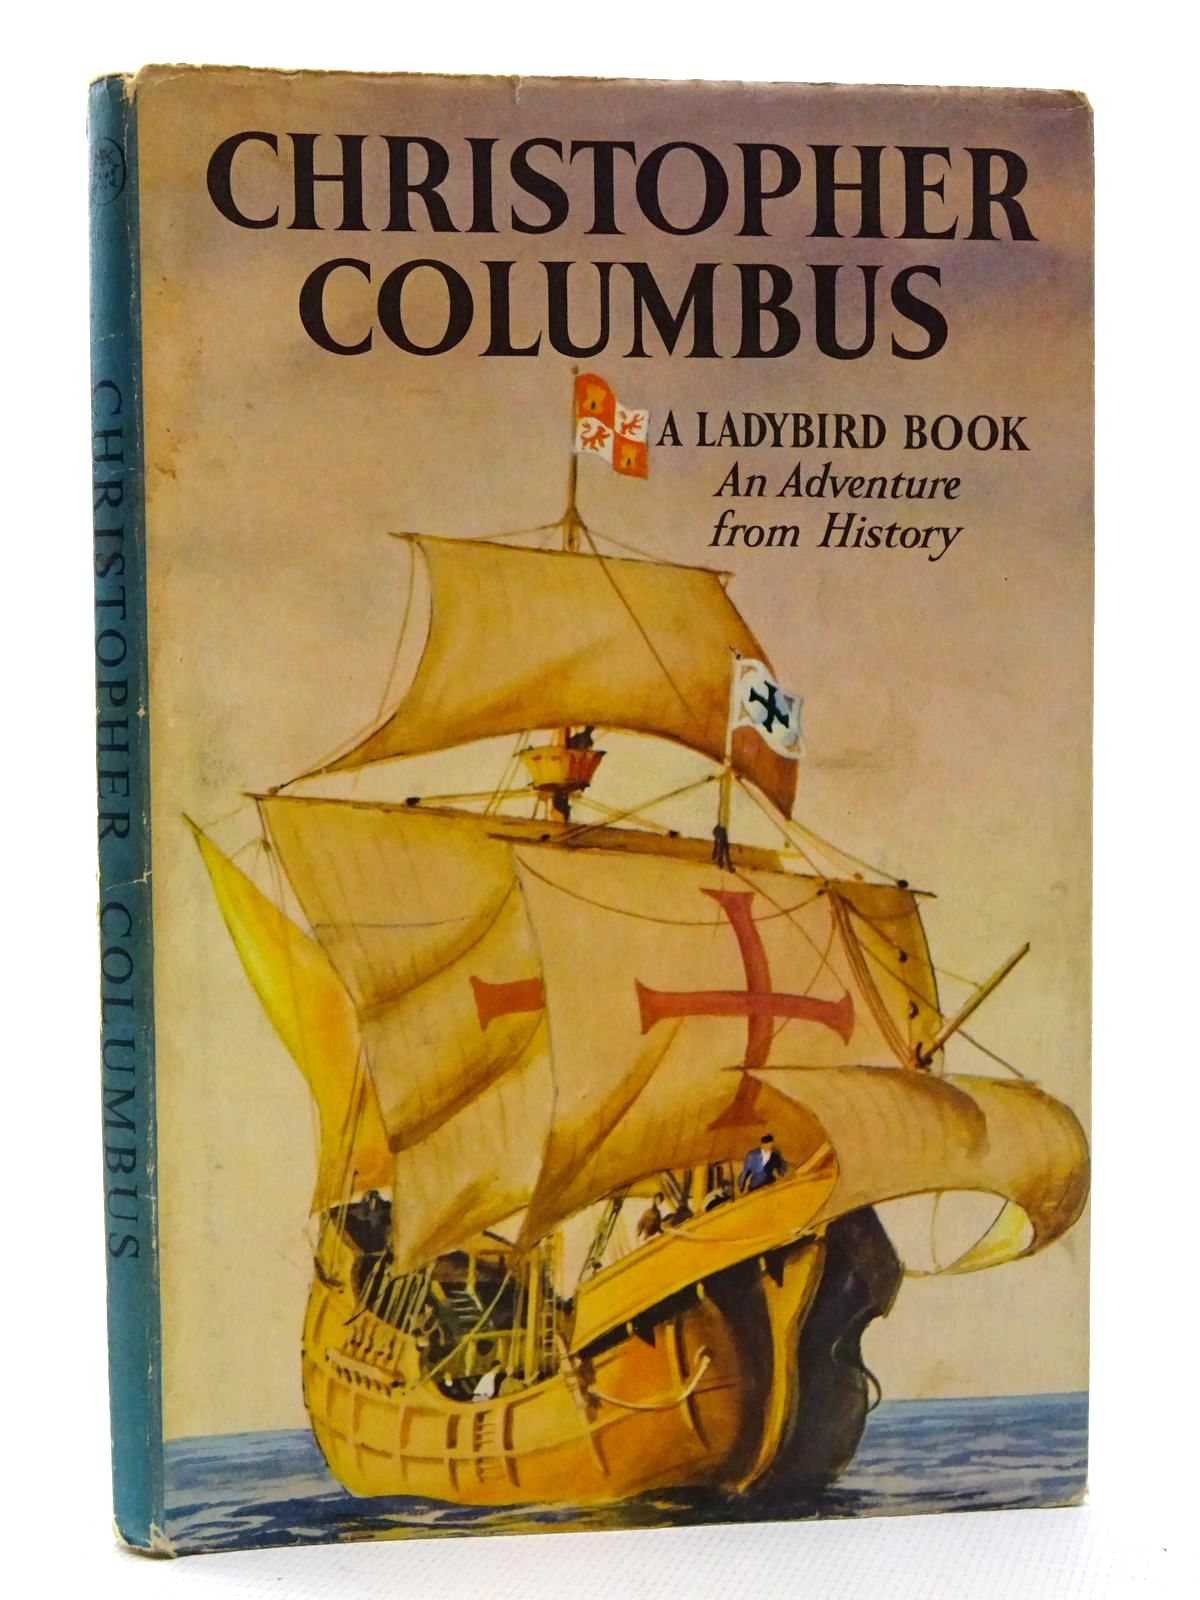 Photo of CHRISTOPHER COLUMBUS written by Peach, L. Du Garde illustrated by Kenney, John published by Wills & Hepworth Ltd. (STOCK CODE: 2124239)  for sale by Stella & Rose's Books